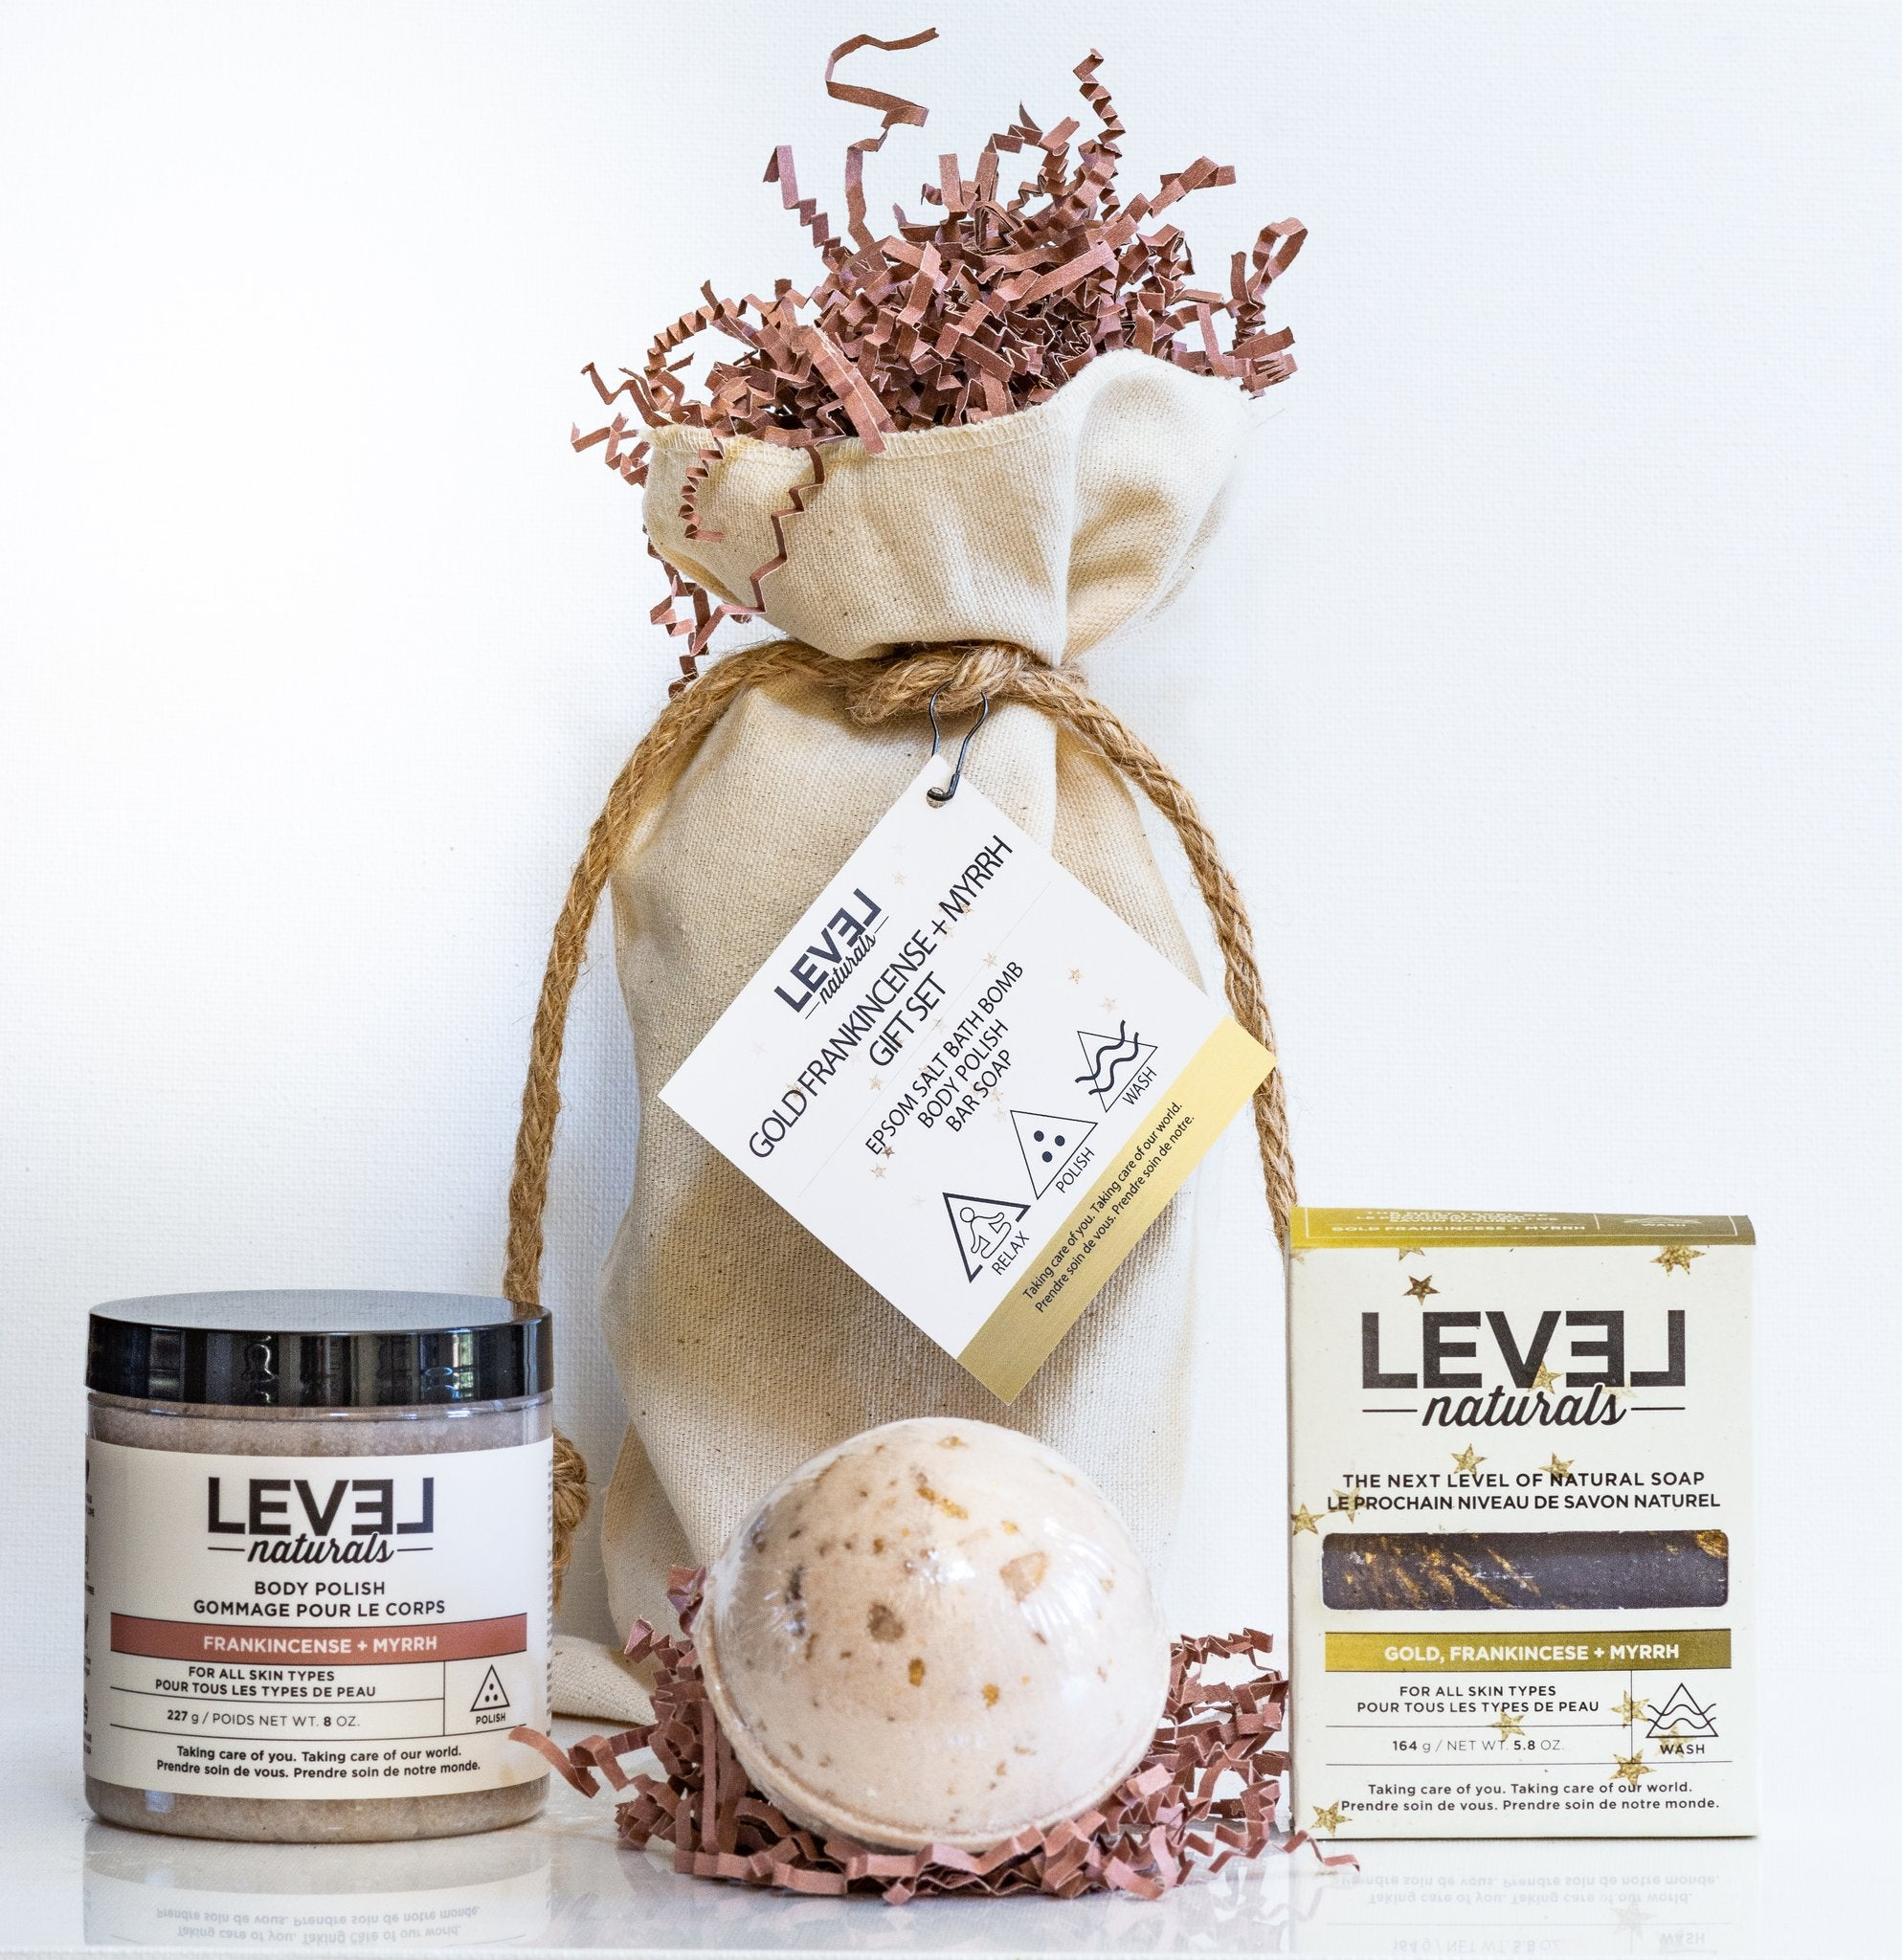 Level Naturals Gold Frankincense + Myrrh 3-Piece Gift Set